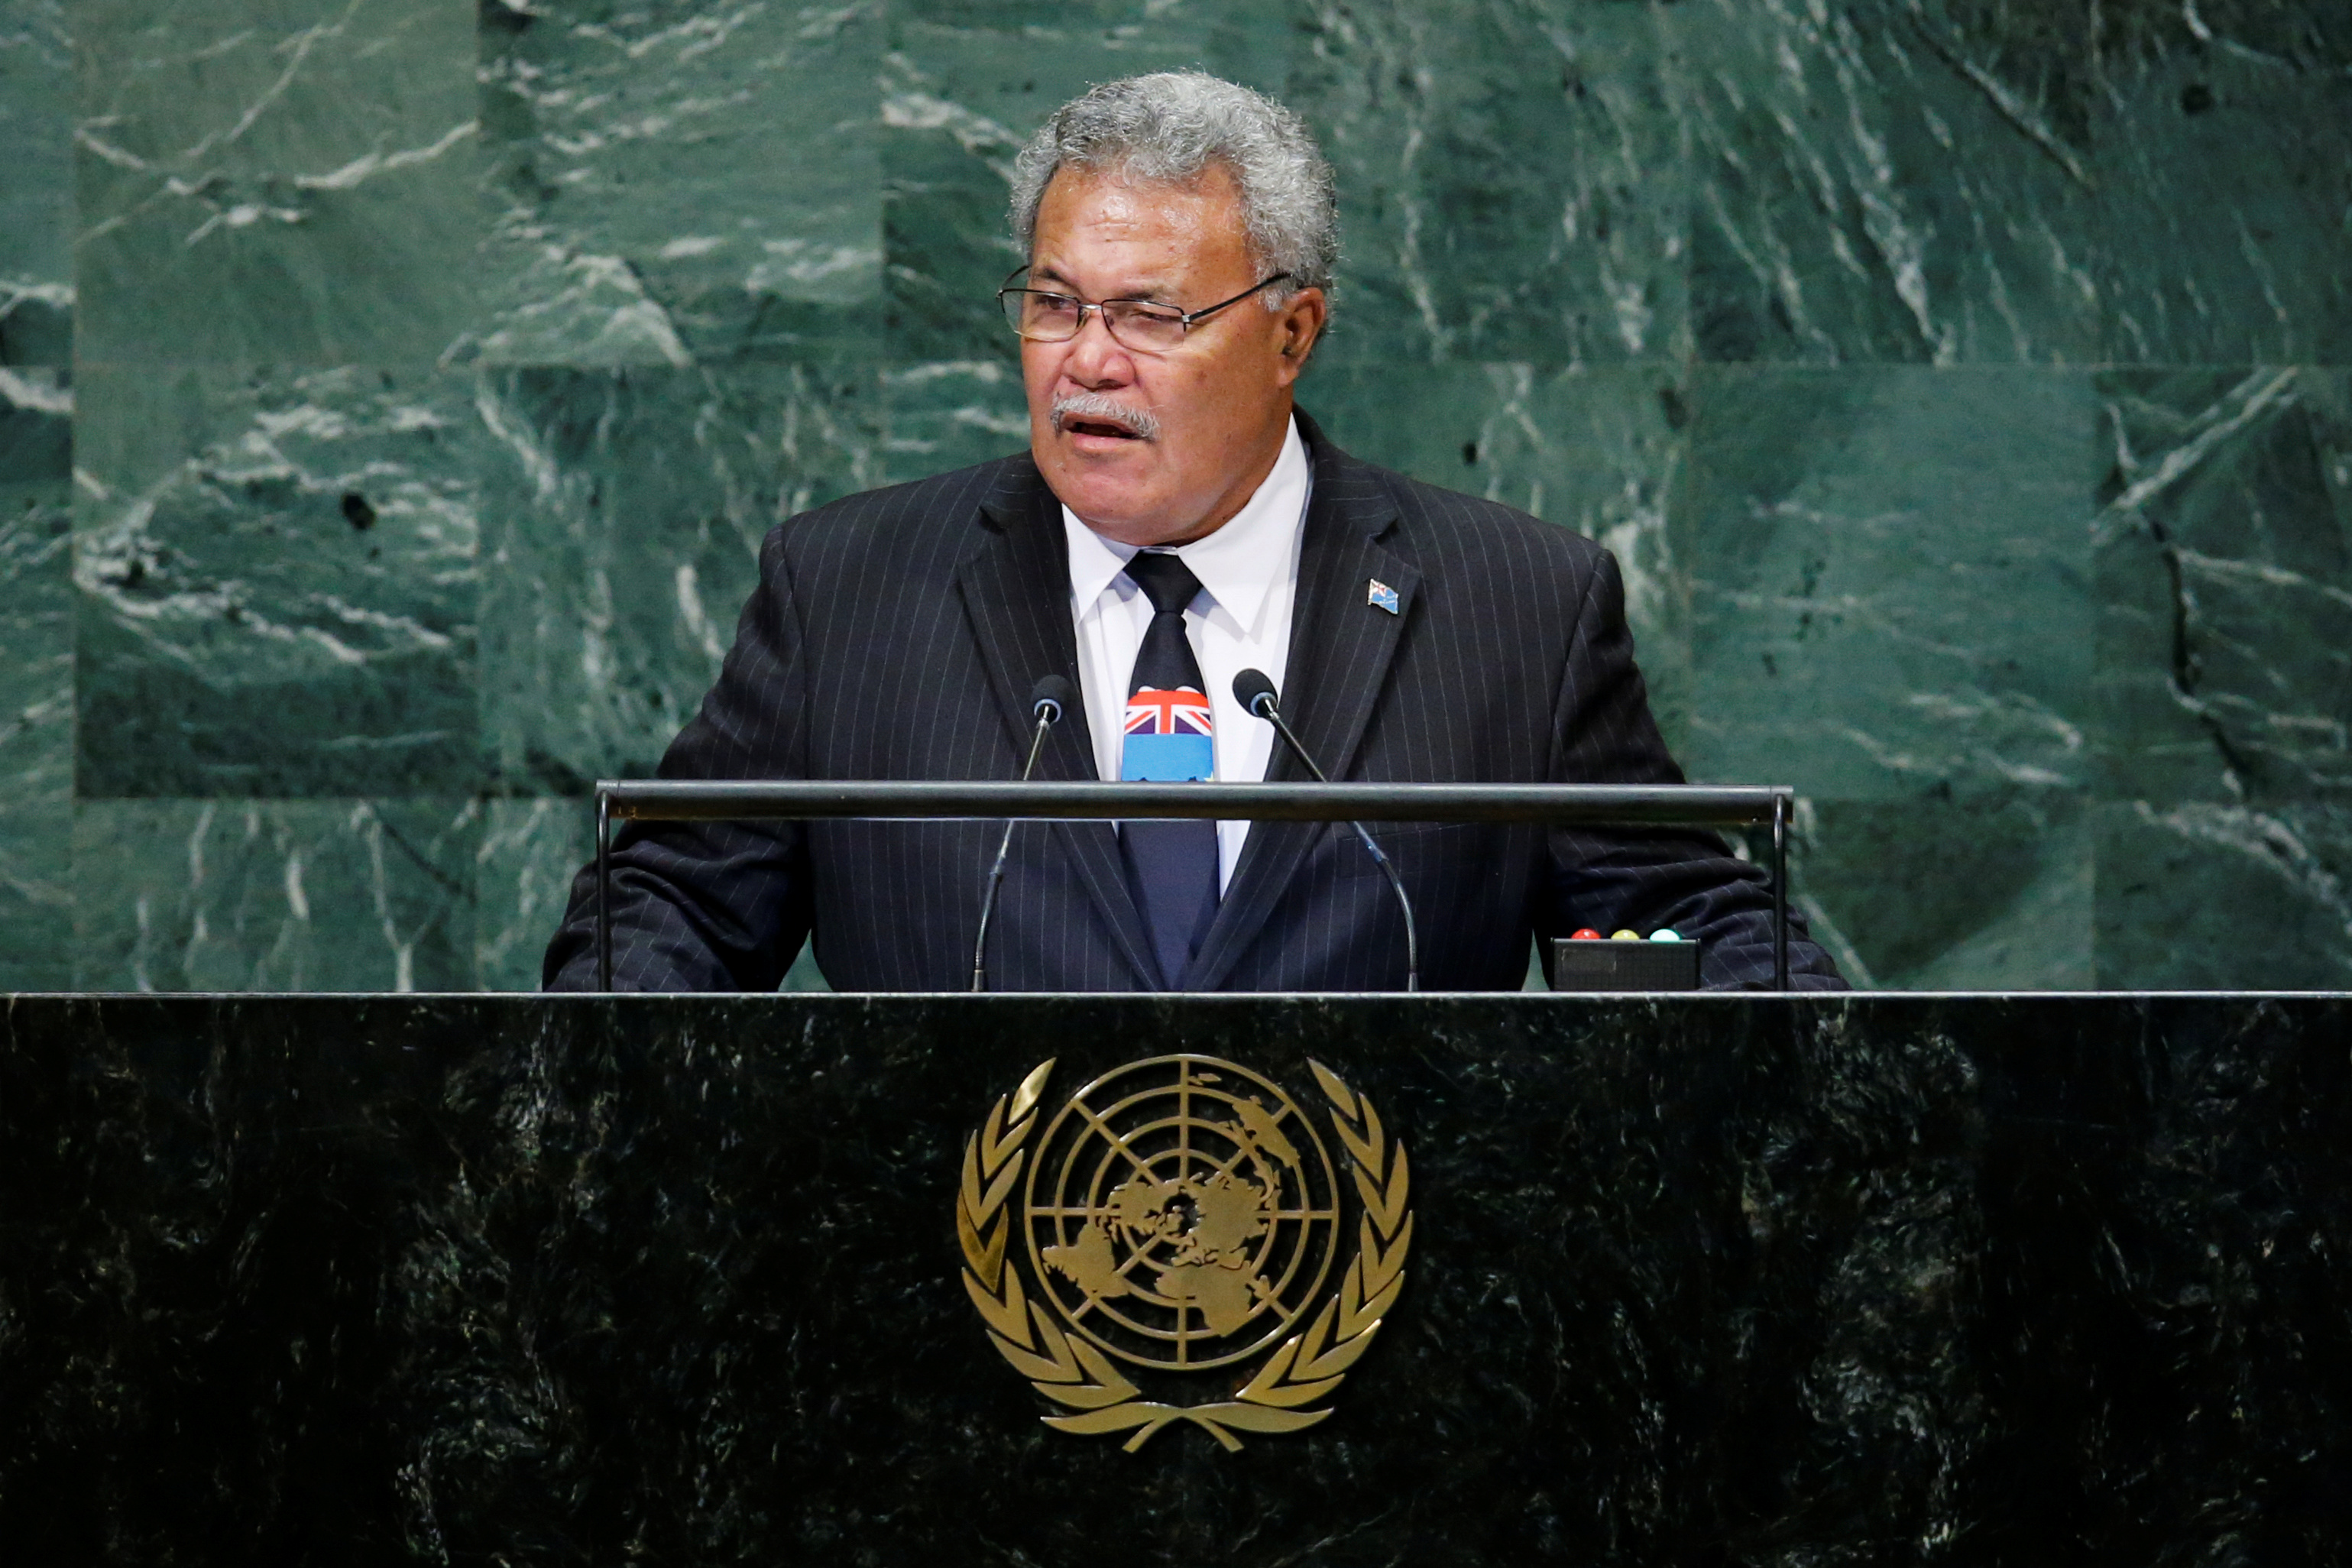 Tuvalu Prime Minister Sopoaga addresses the 73rd session of the United Nations General Assembly at U.N. headquarters in New York